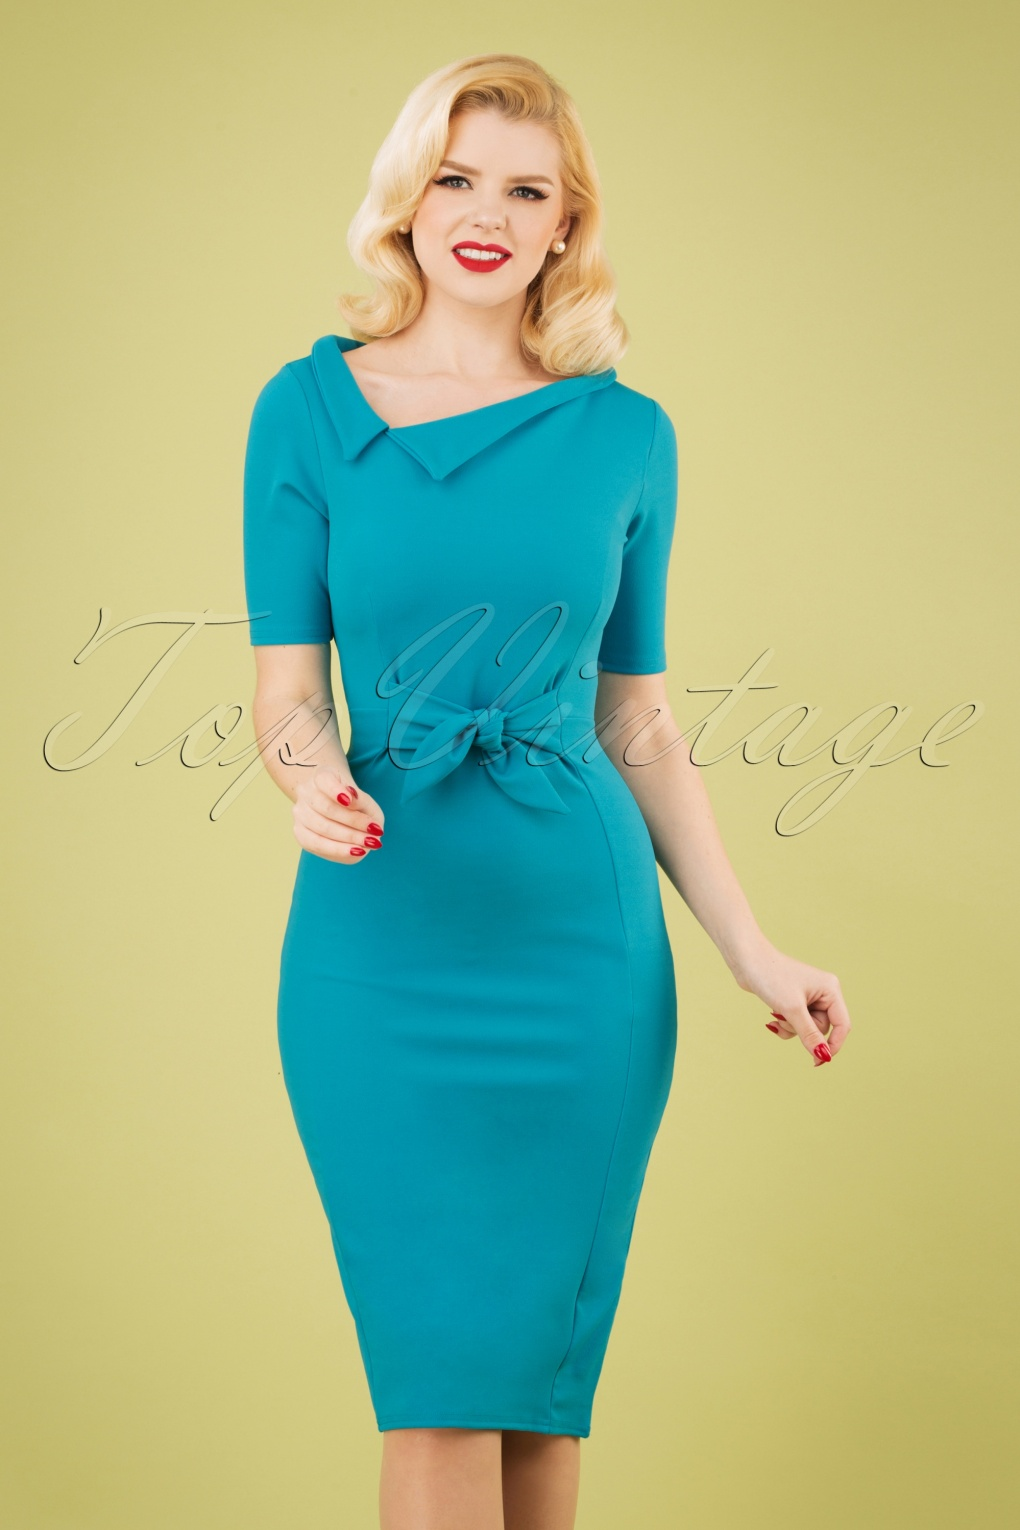 88855bc43f7 500 Vintage Style Dresses for Sale 50s Jennifer Pencil Dress in Aqua Blue   47.52 AT